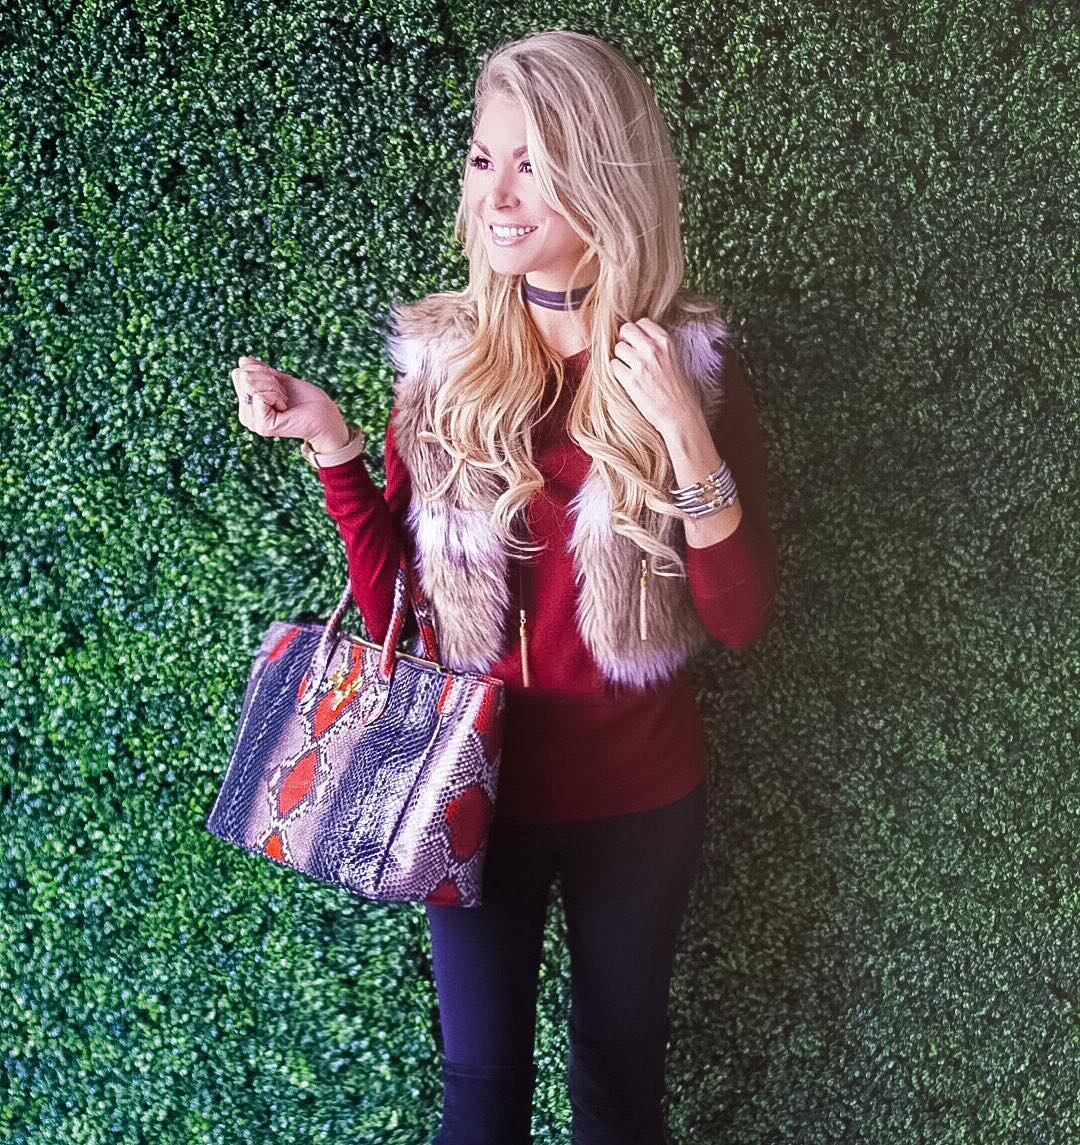 When a bag matches your outfit this perfectly, you know it's meant to be! But seriously, totally obsessing over every single @shoptaxidermy bag right now! #needthemALL http://liketk.it/2ps20 #fall #fallfashion #ootd #wiw #liketkit